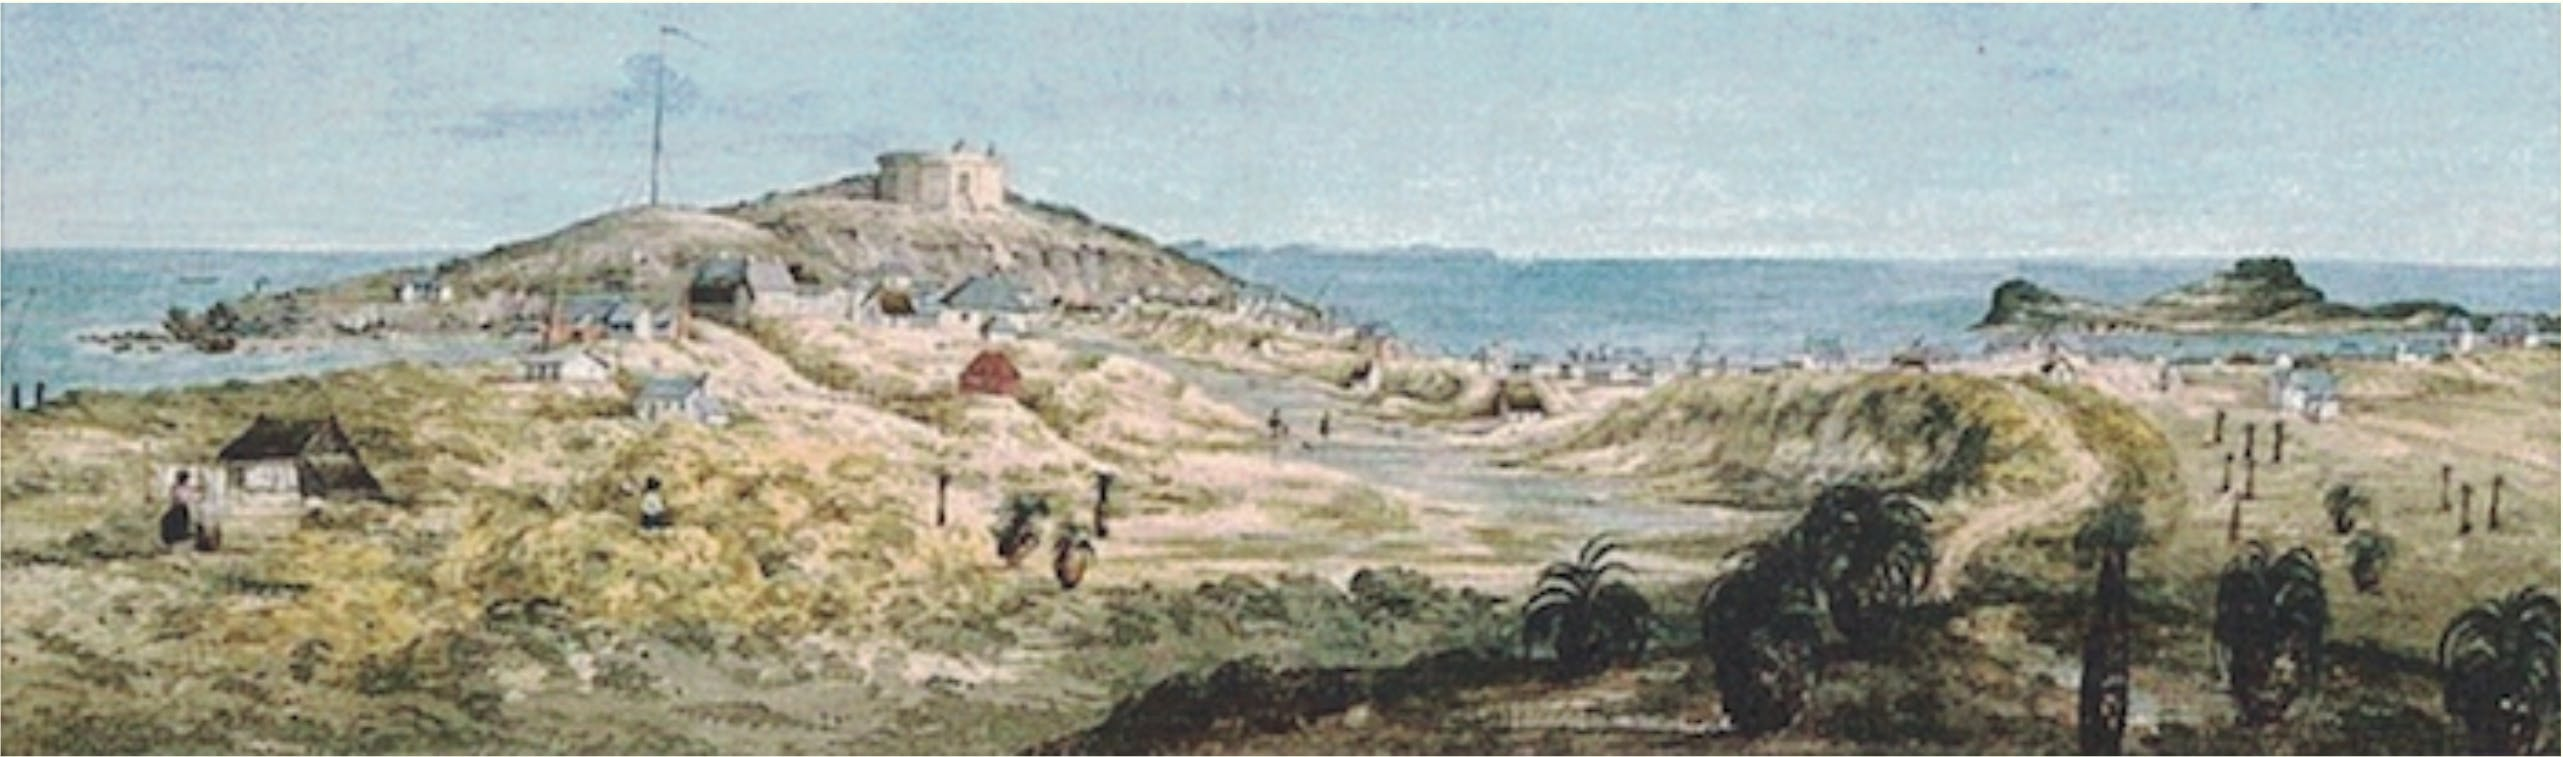 Panorama of the Swan River Settlement